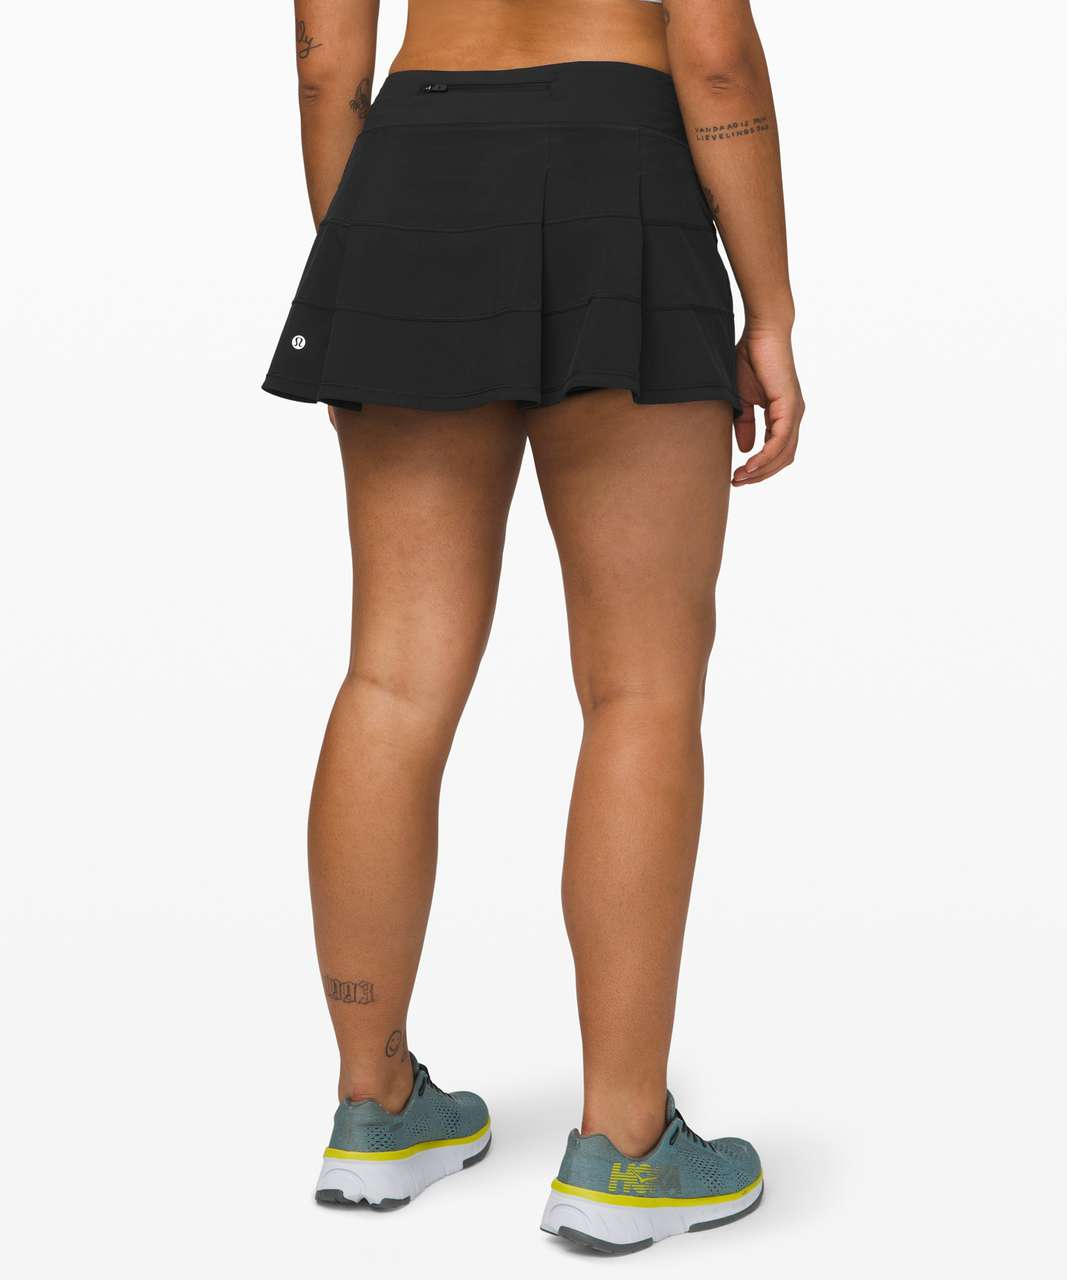 "Lululemon Pace Rival Skirt (Regular) *4-way Stretch 13"" - Black"